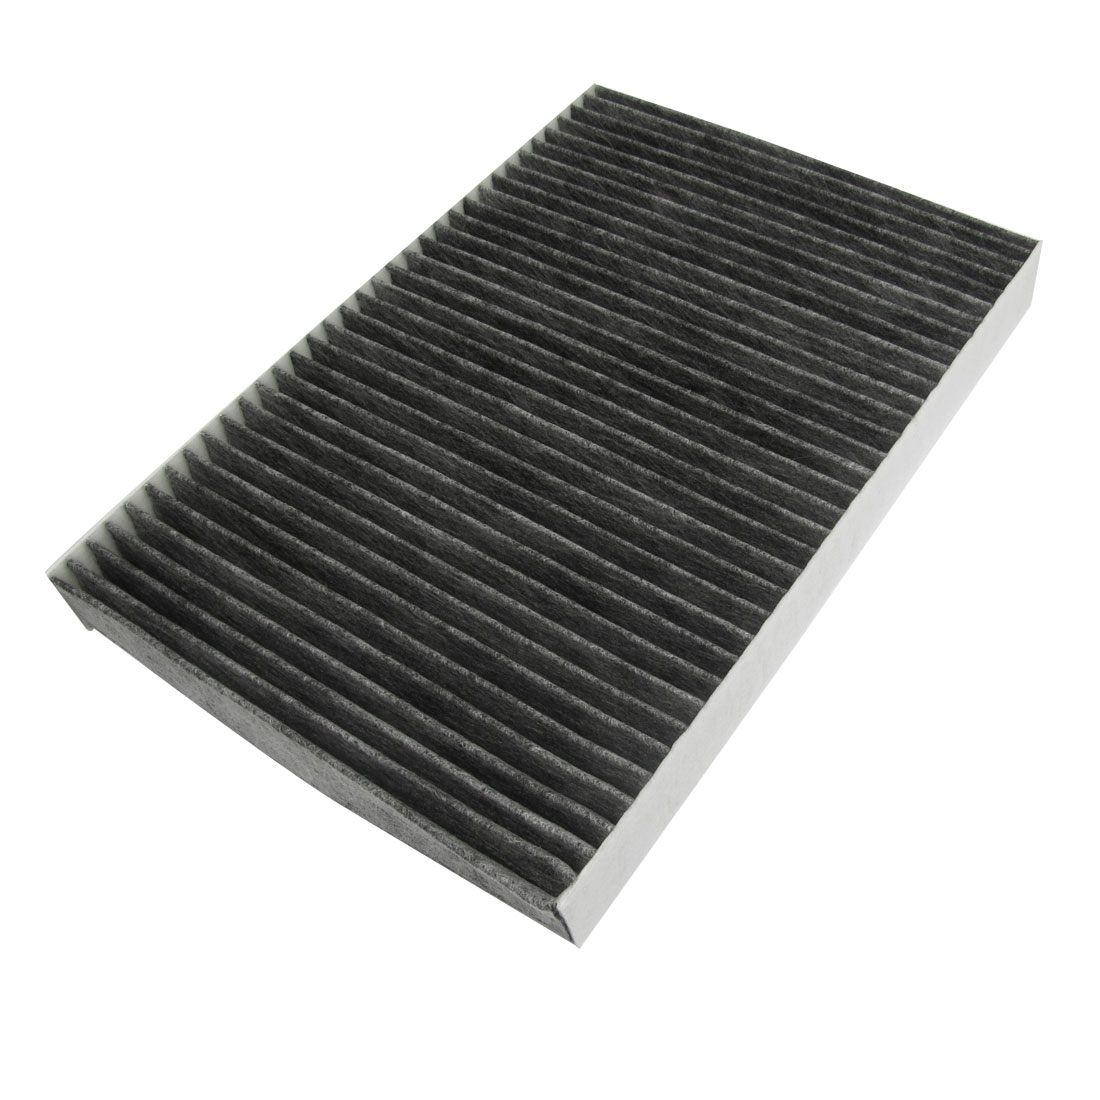 Black Active Carbon Fiber A/C Cabin Air Filter for Nissan Cefiro A32